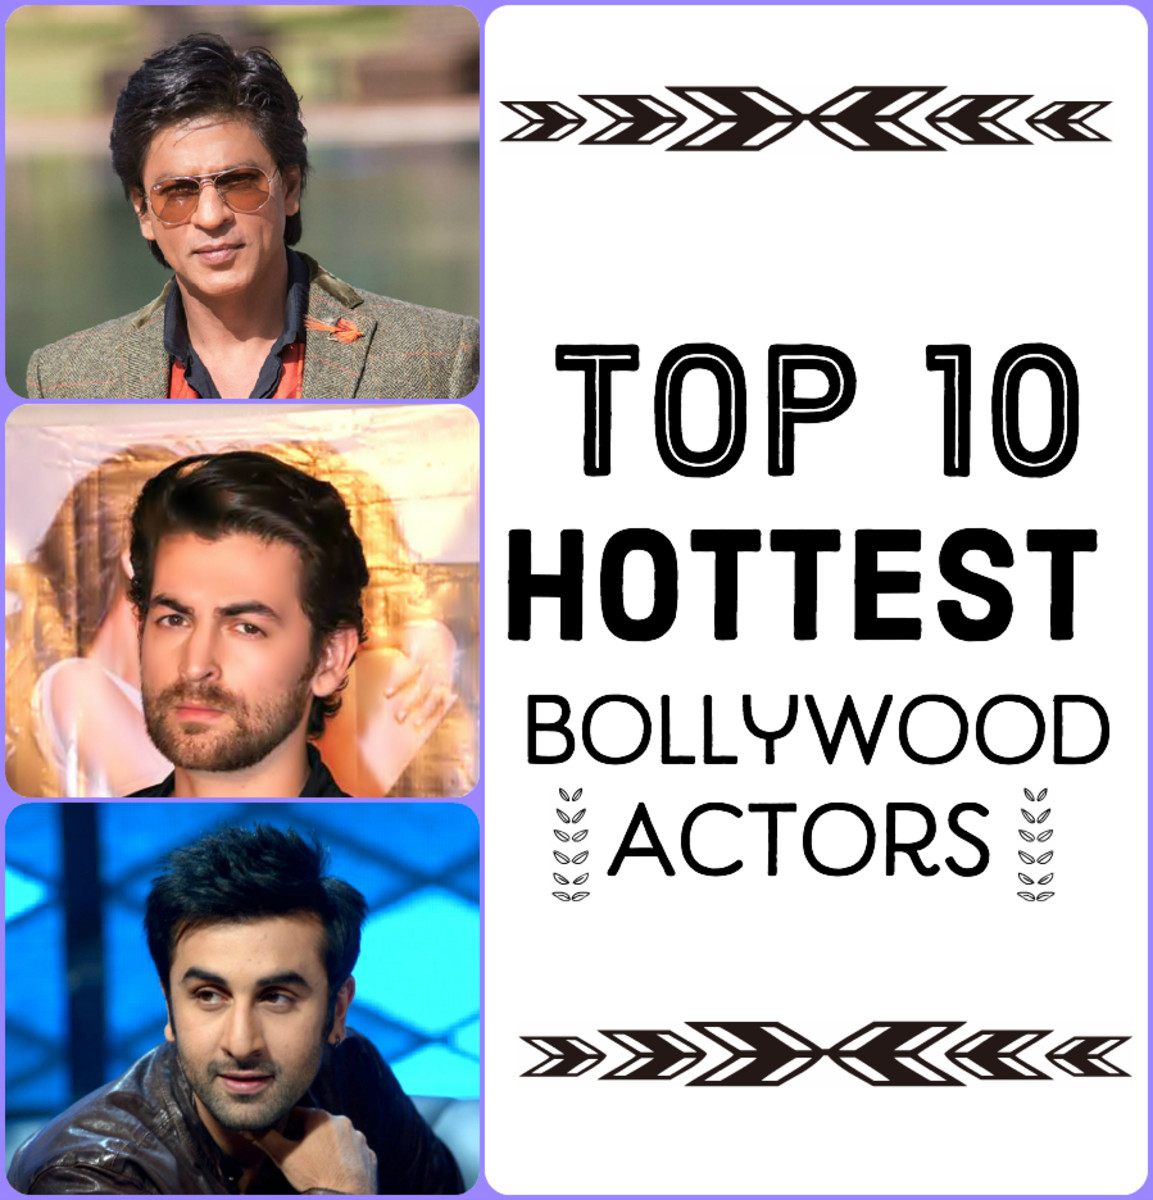 Top Ten Hottest Bollywood Actors